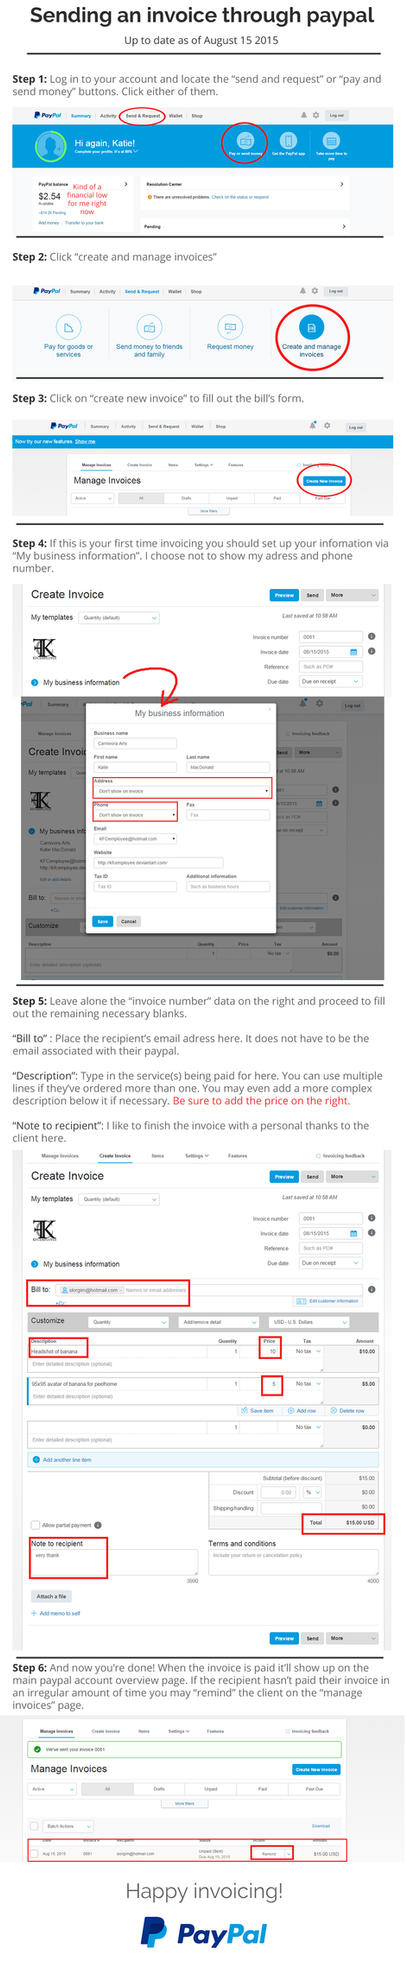 how to send payment using paypal